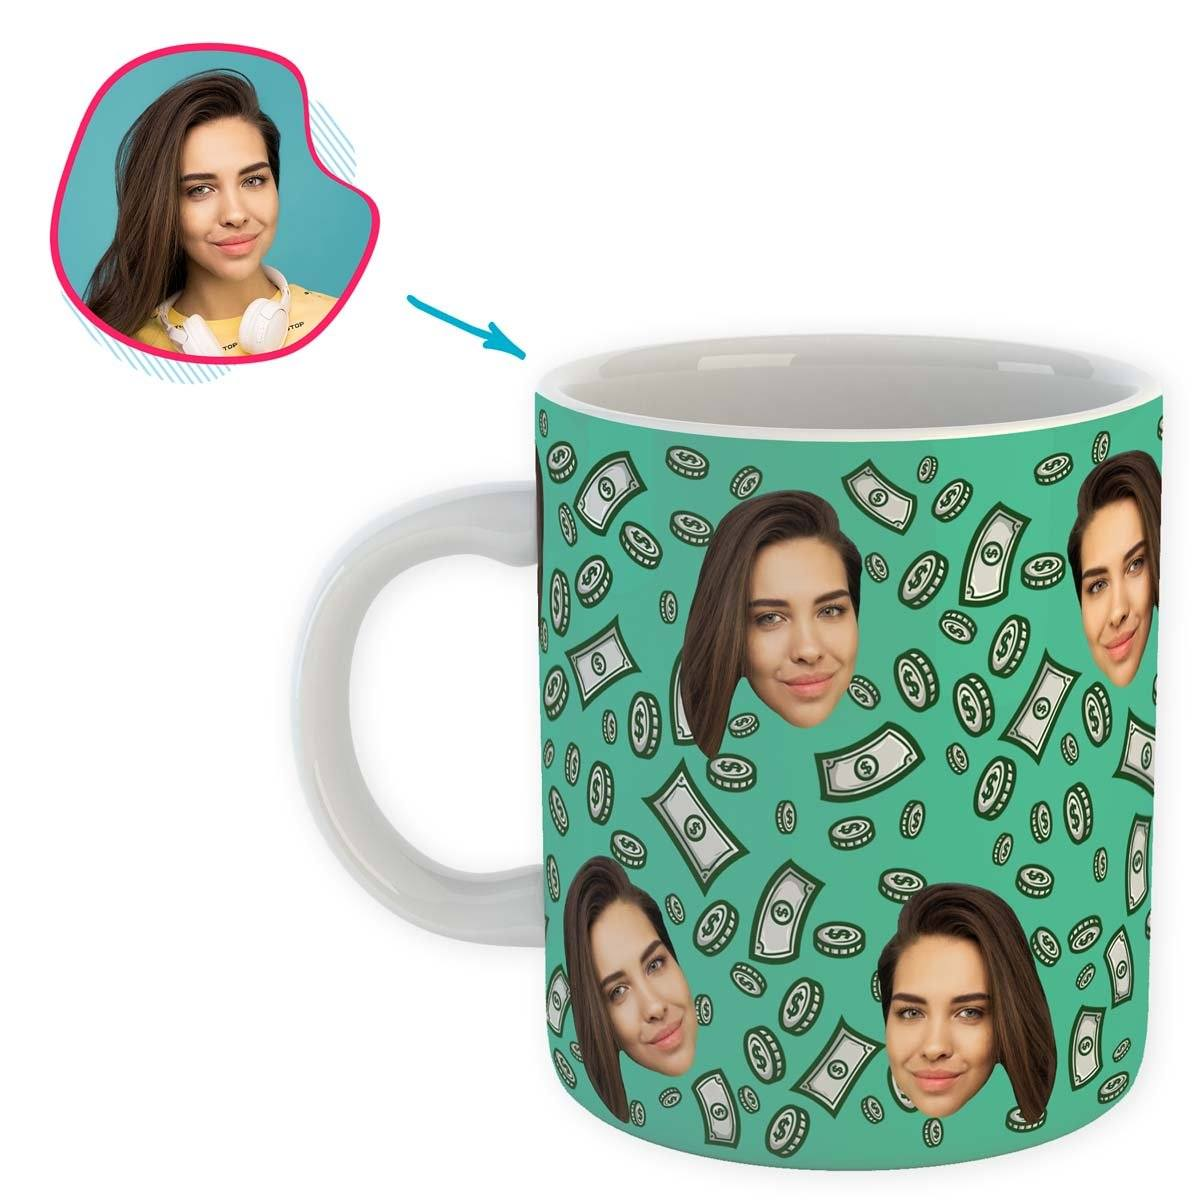 mint Money mug personalized with photo of face printed on it